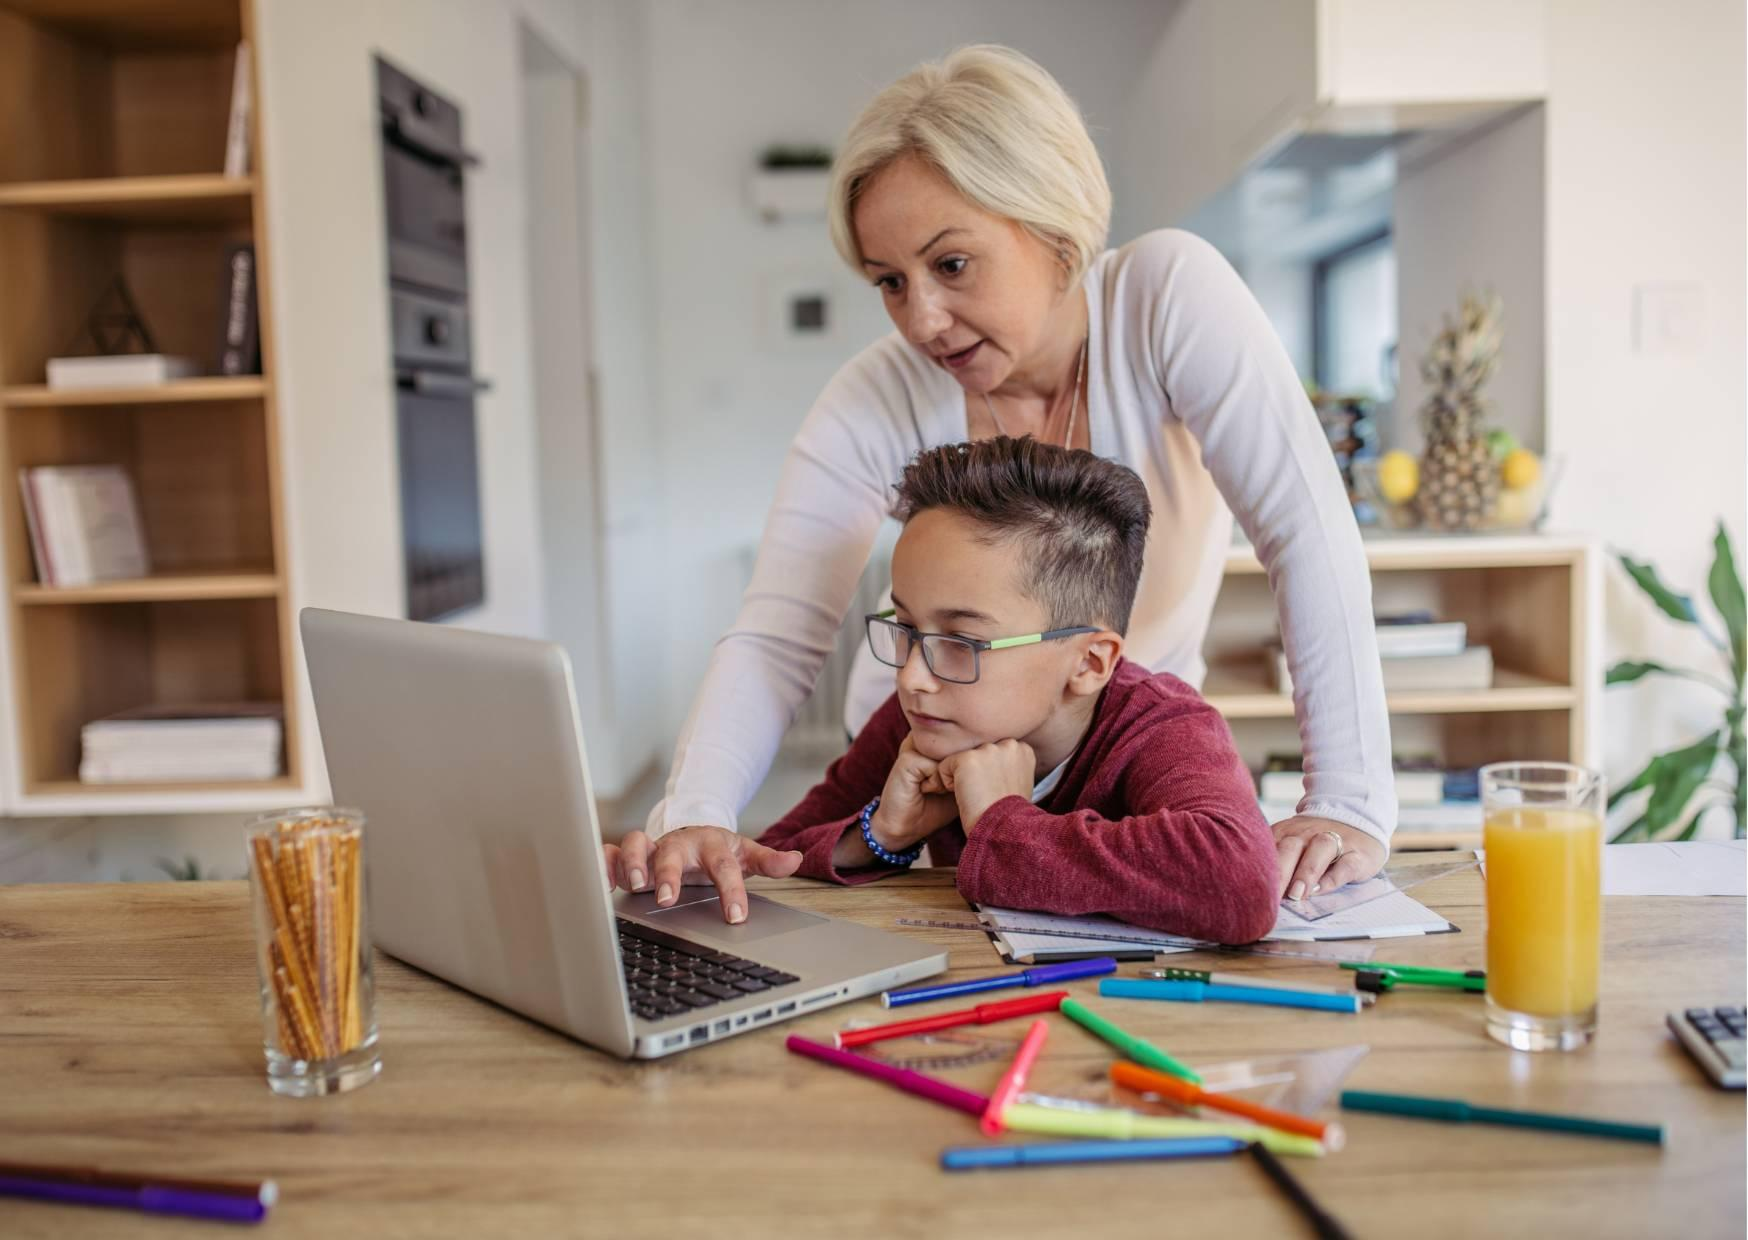 4 Things To Consider When Helping Kids With Homework